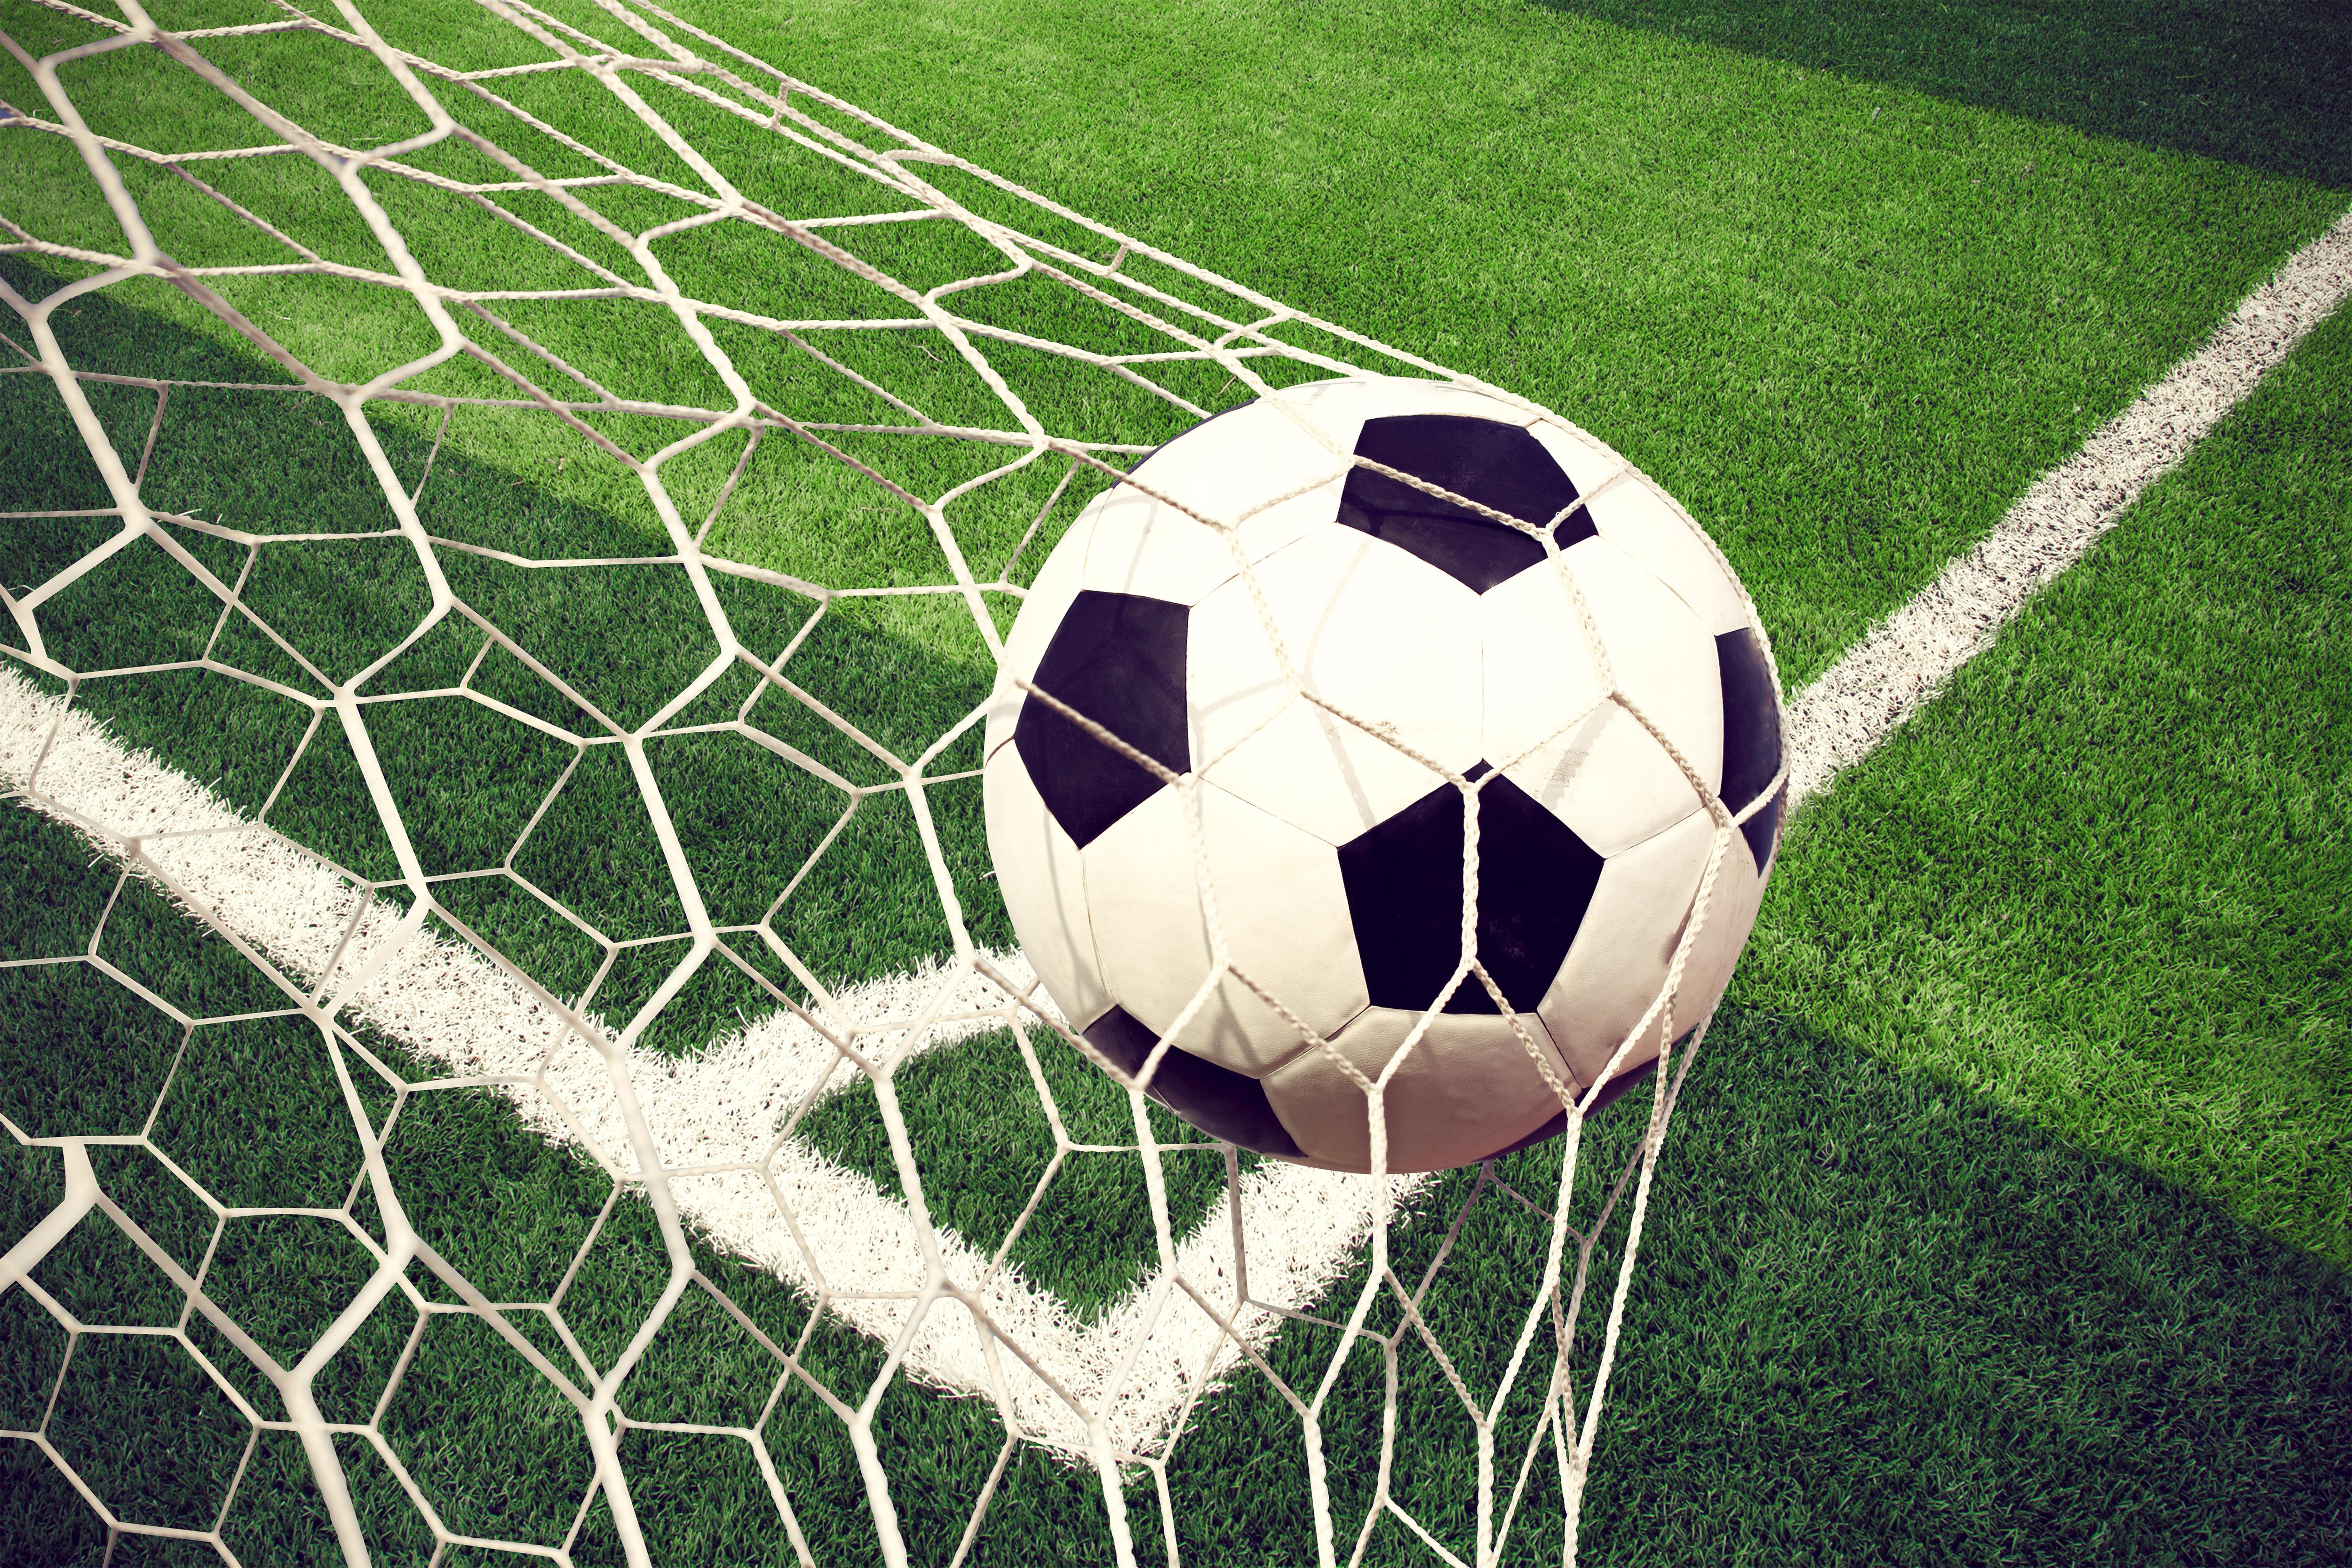 Goals clipart transparent background. Soccer goal gallery yopriceville